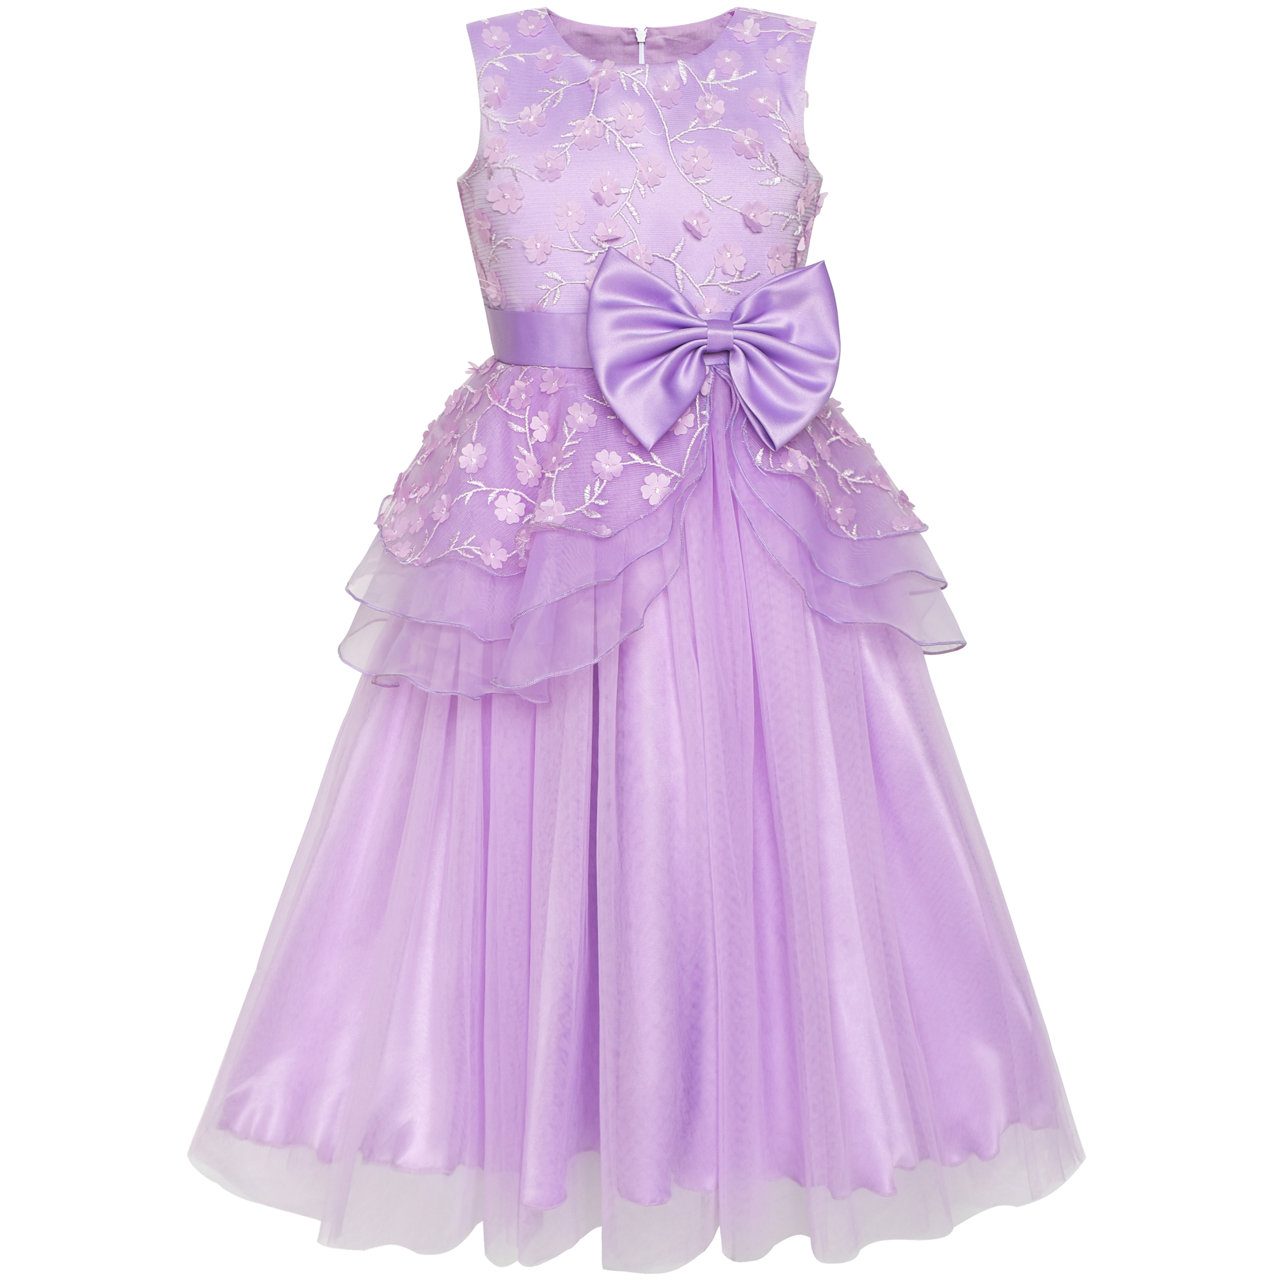 Sunny Fashion Flower Girls Dress Ball Gown Wedding Bridesmaid Bow Tie 2018 Summer Princess Party Dresses Girl Clothes Size 6-12 sunny fashion flower girls dress peach ruffle butterfly wedding bridesmaid 2018 summer princess party dresses clothes size 6 14